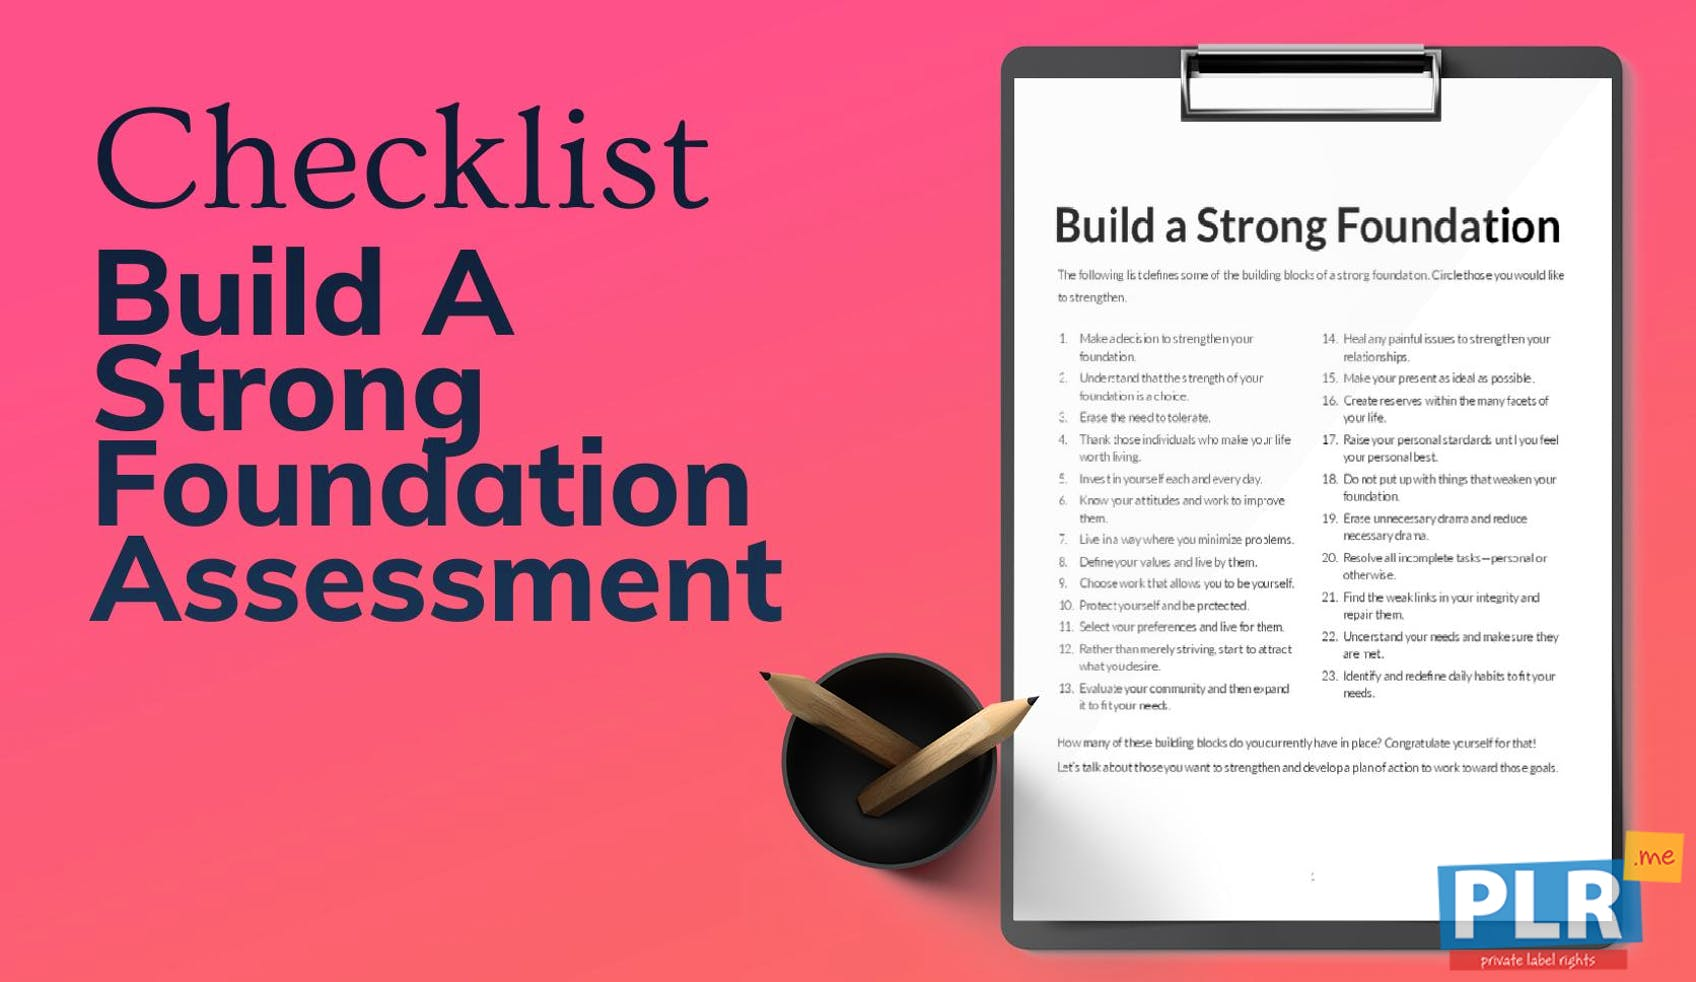 Build A Strong Foundation Assessment